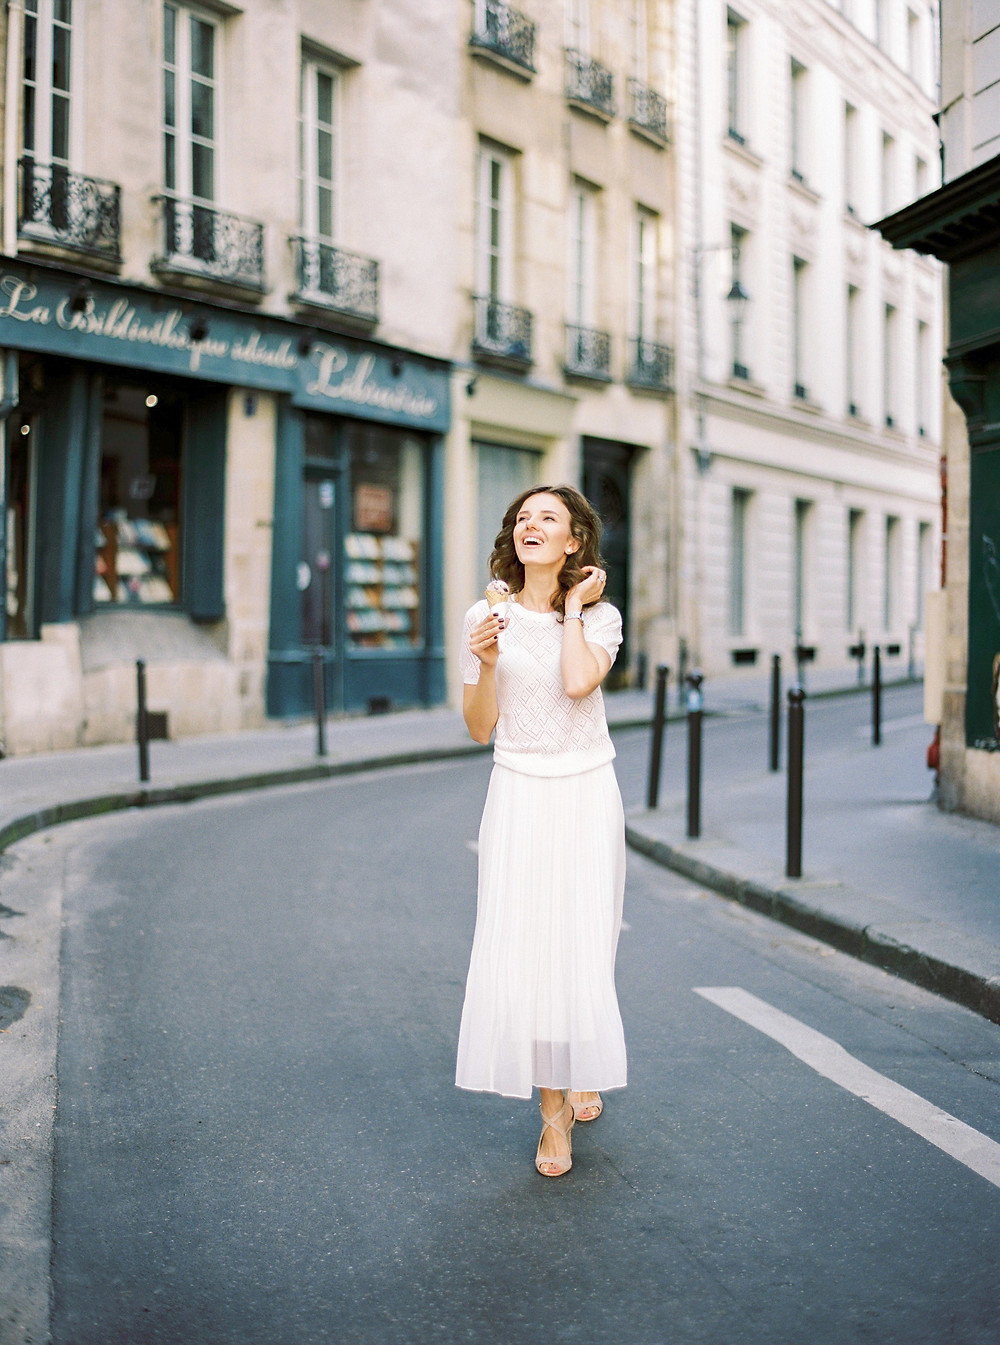 Parisian streets and girl with ice-cream in wight dress